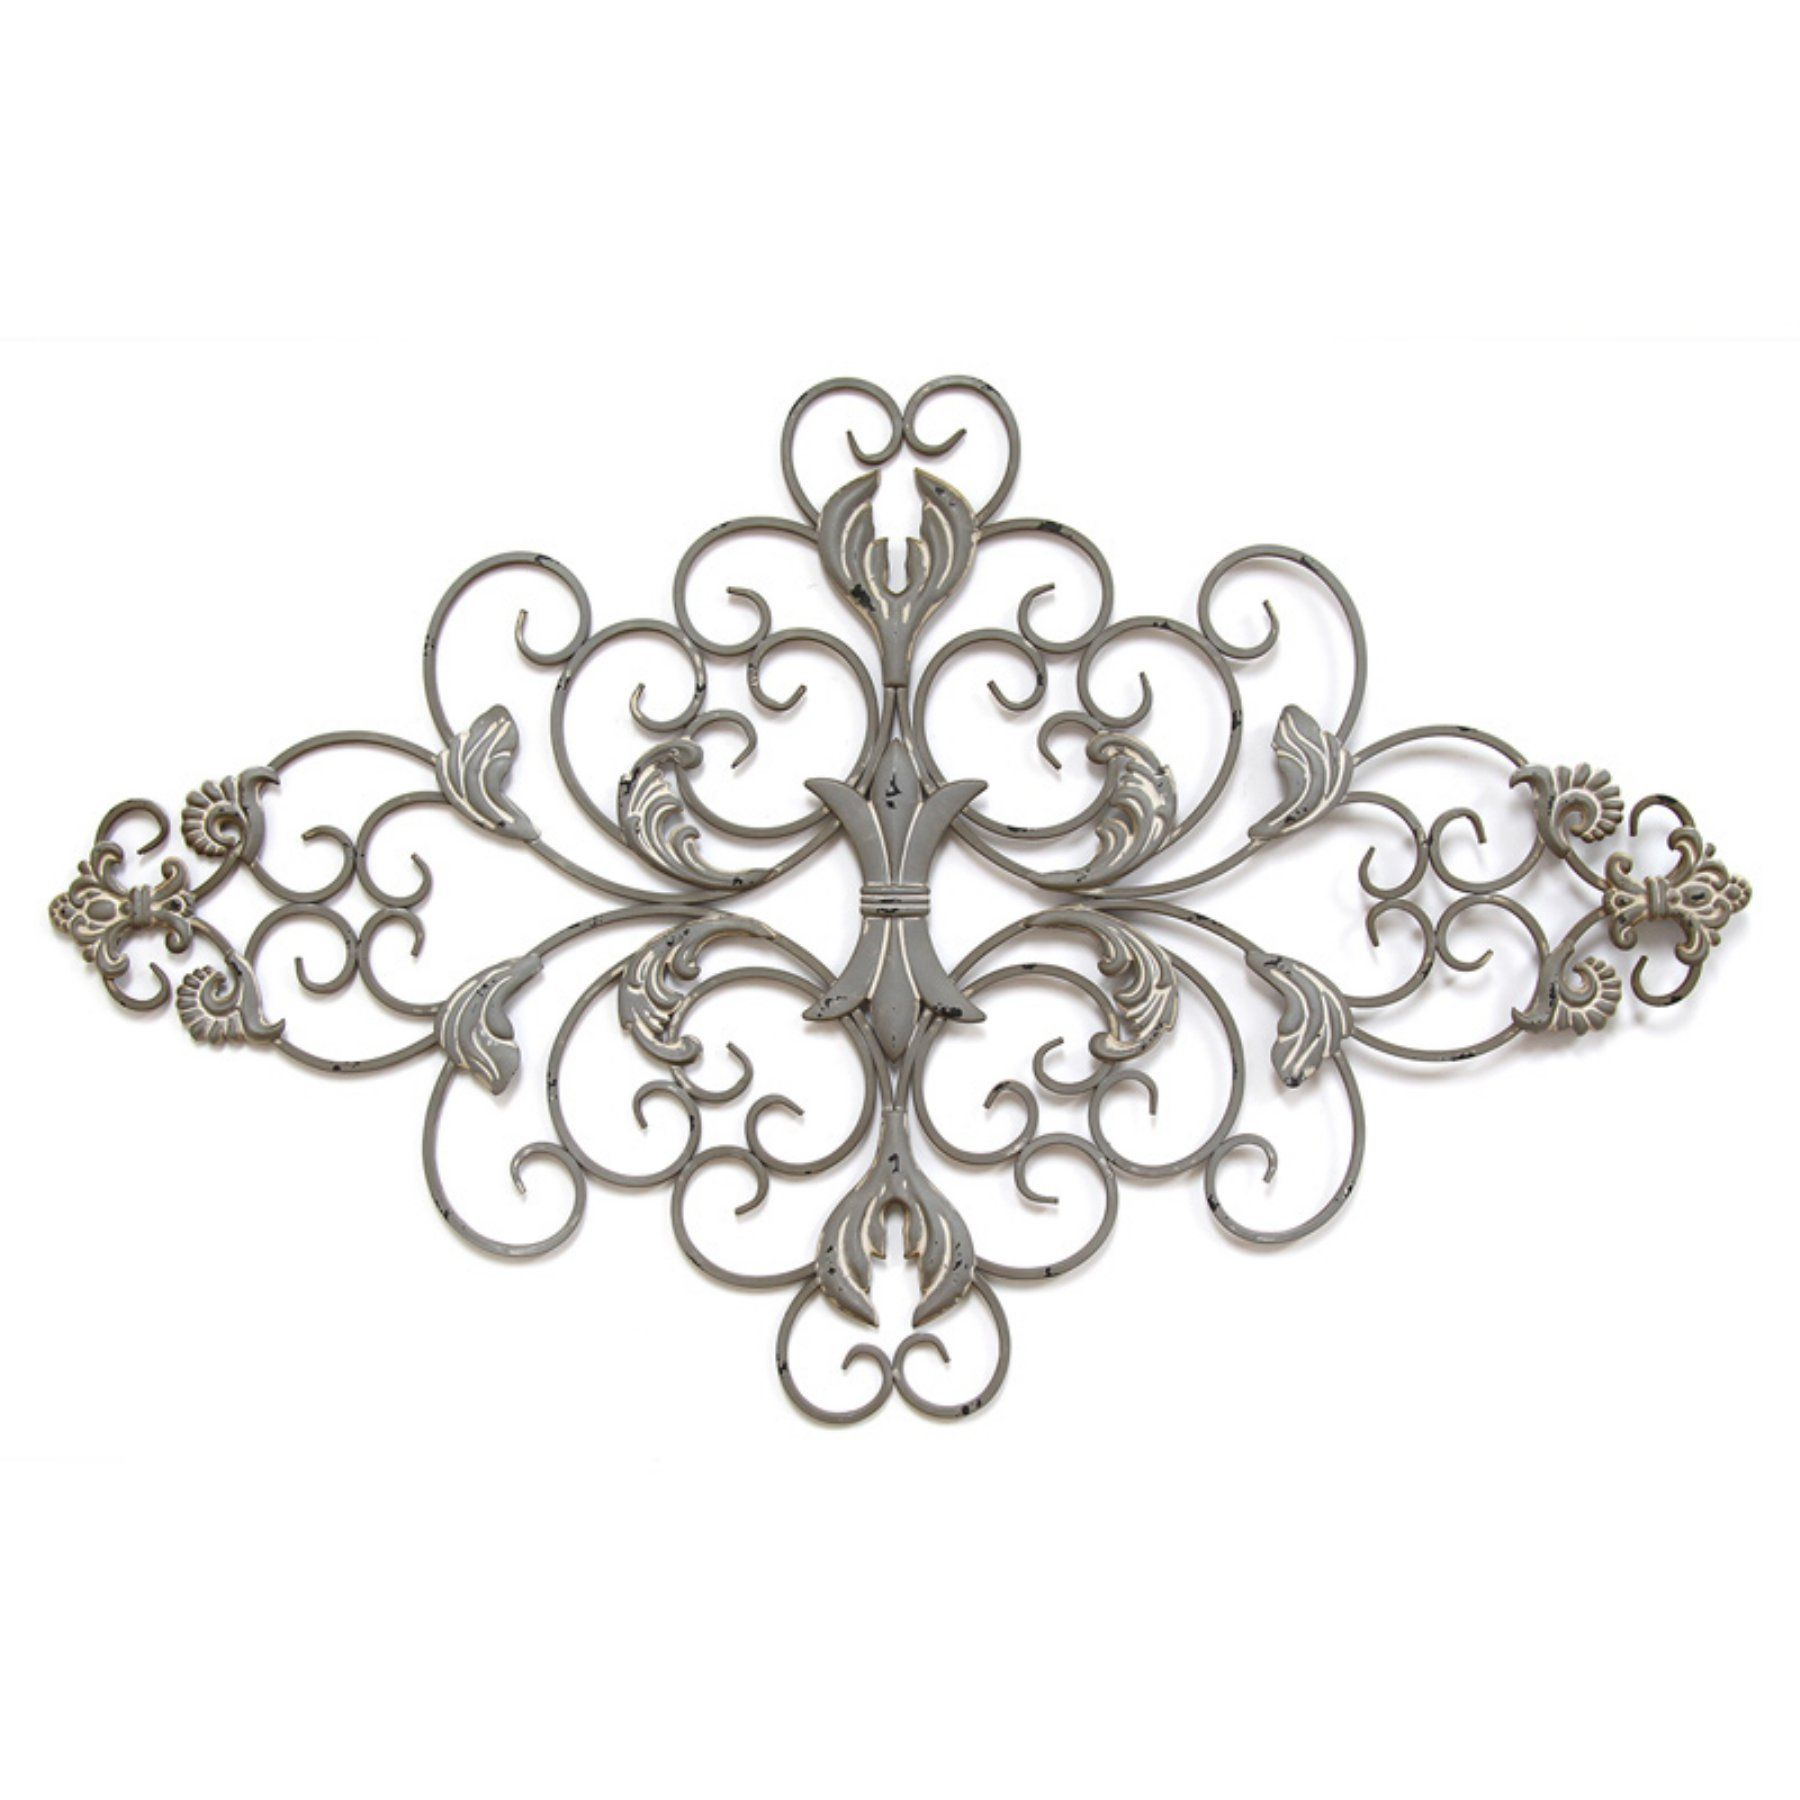 Stratton Home Decor Distressed Gray Scroll Wall Decor  S11567